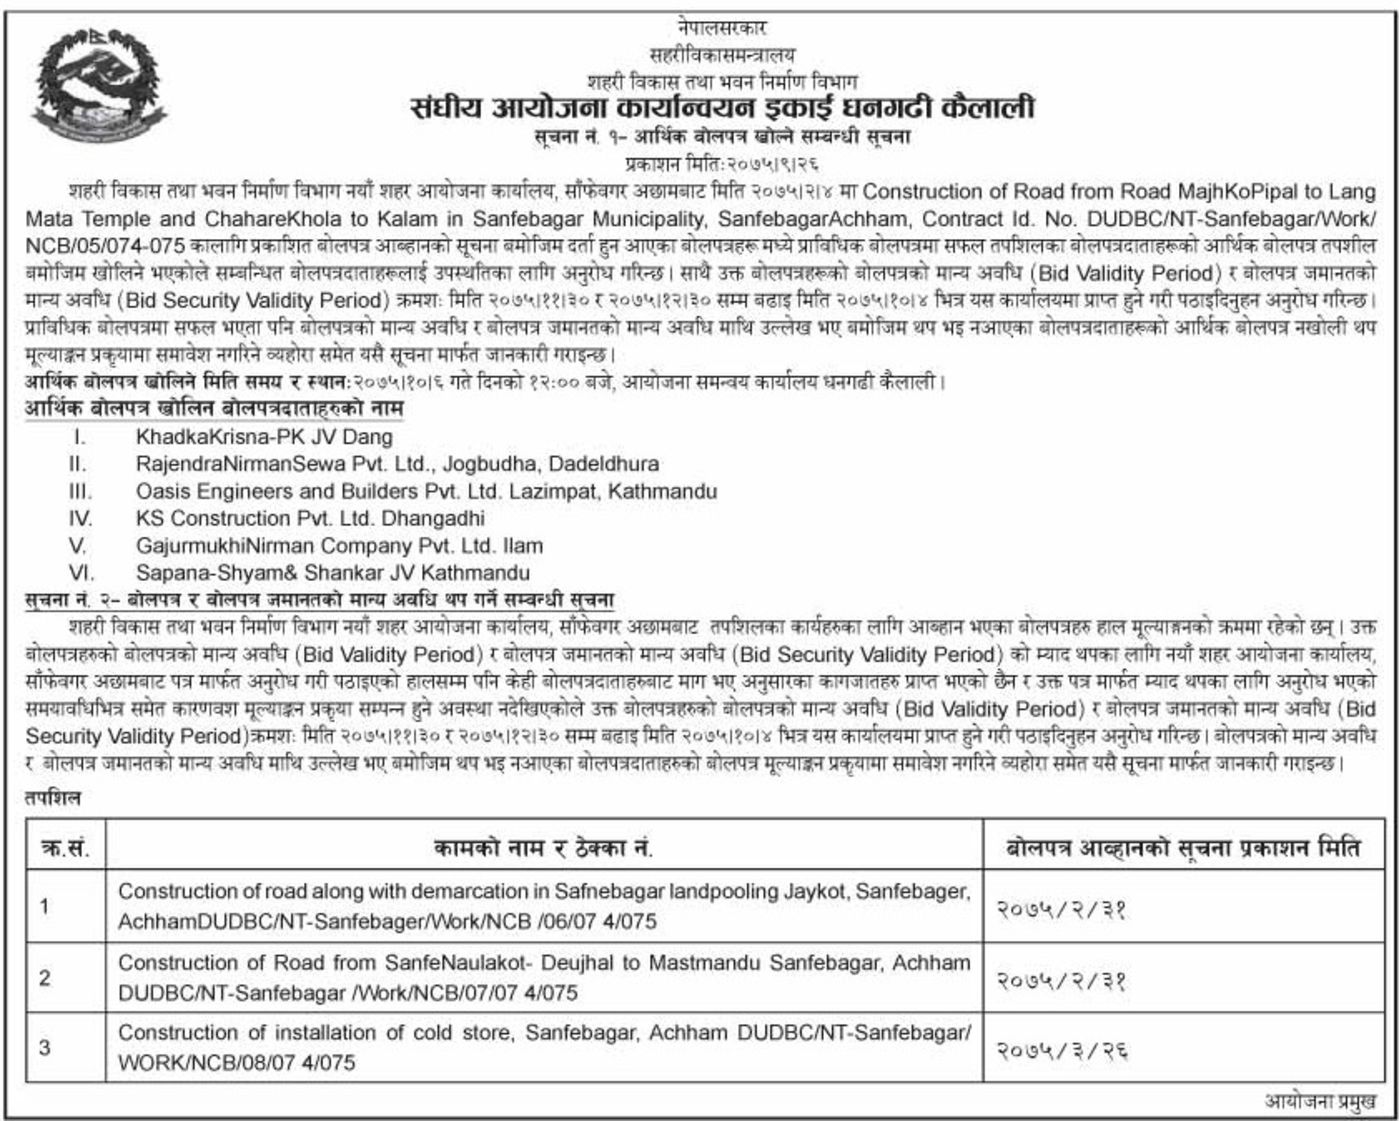 Bids and Tenders Nepal - Tender - Construction Of Road - Sanfebagar